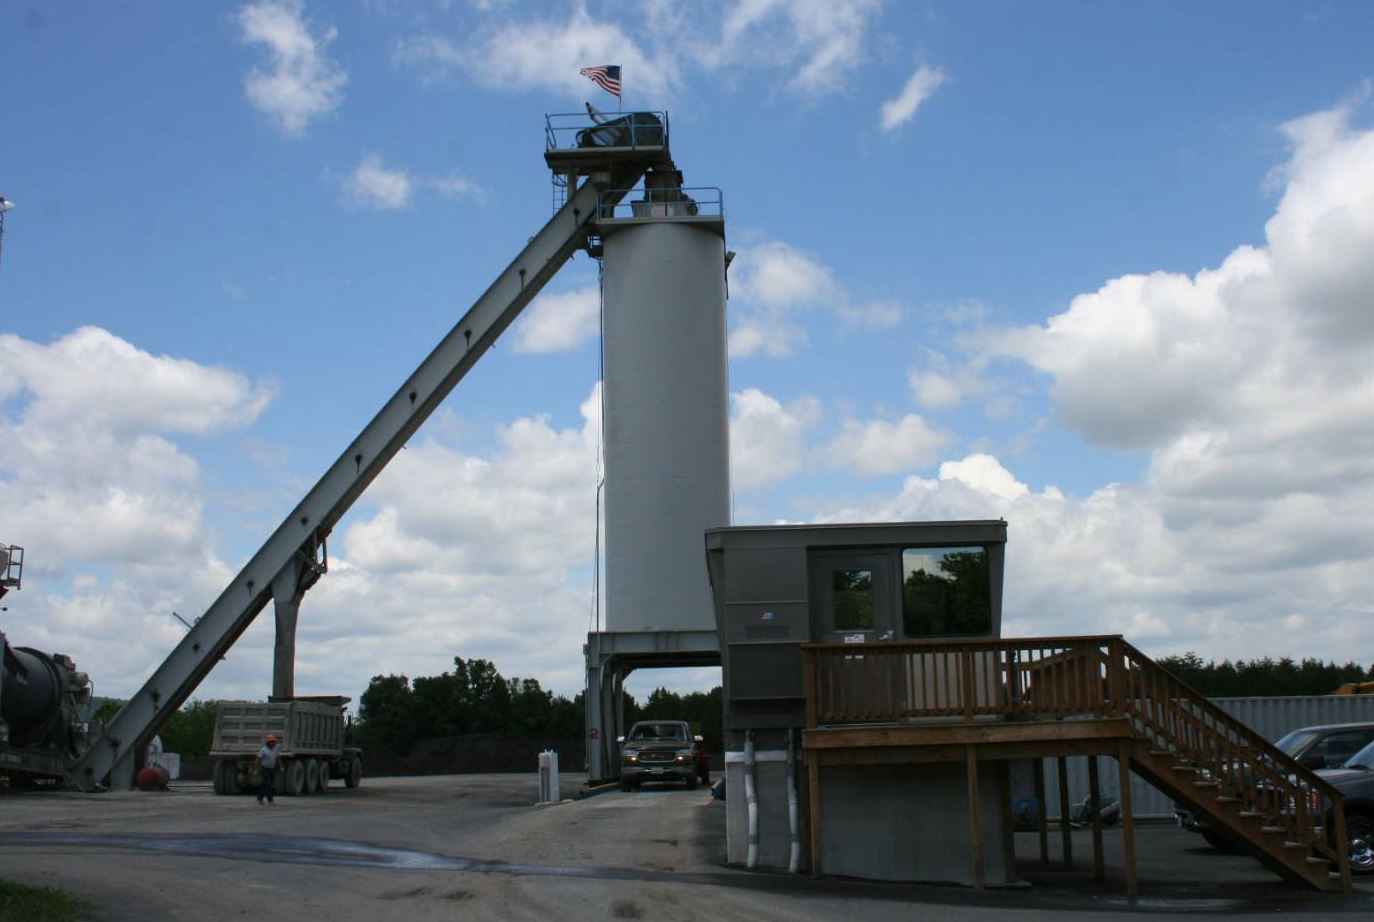 Chemung's asphalt plant in Culpeper is a Terex counterflow plant producing 300 tons per hour.